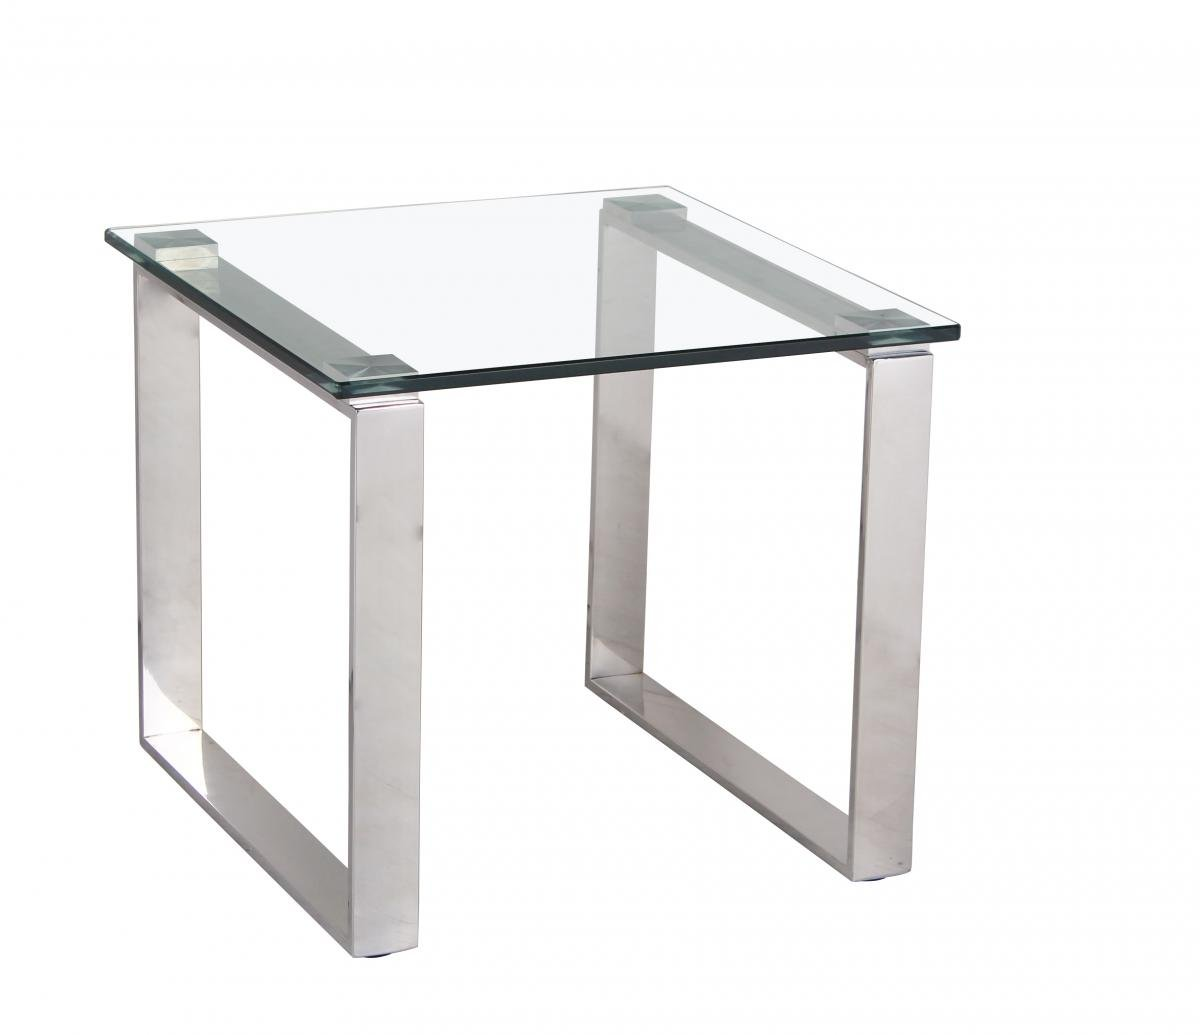 Best price online on Carter Glass Lamp Table with Stainless Steel Legs | Furniture Villa